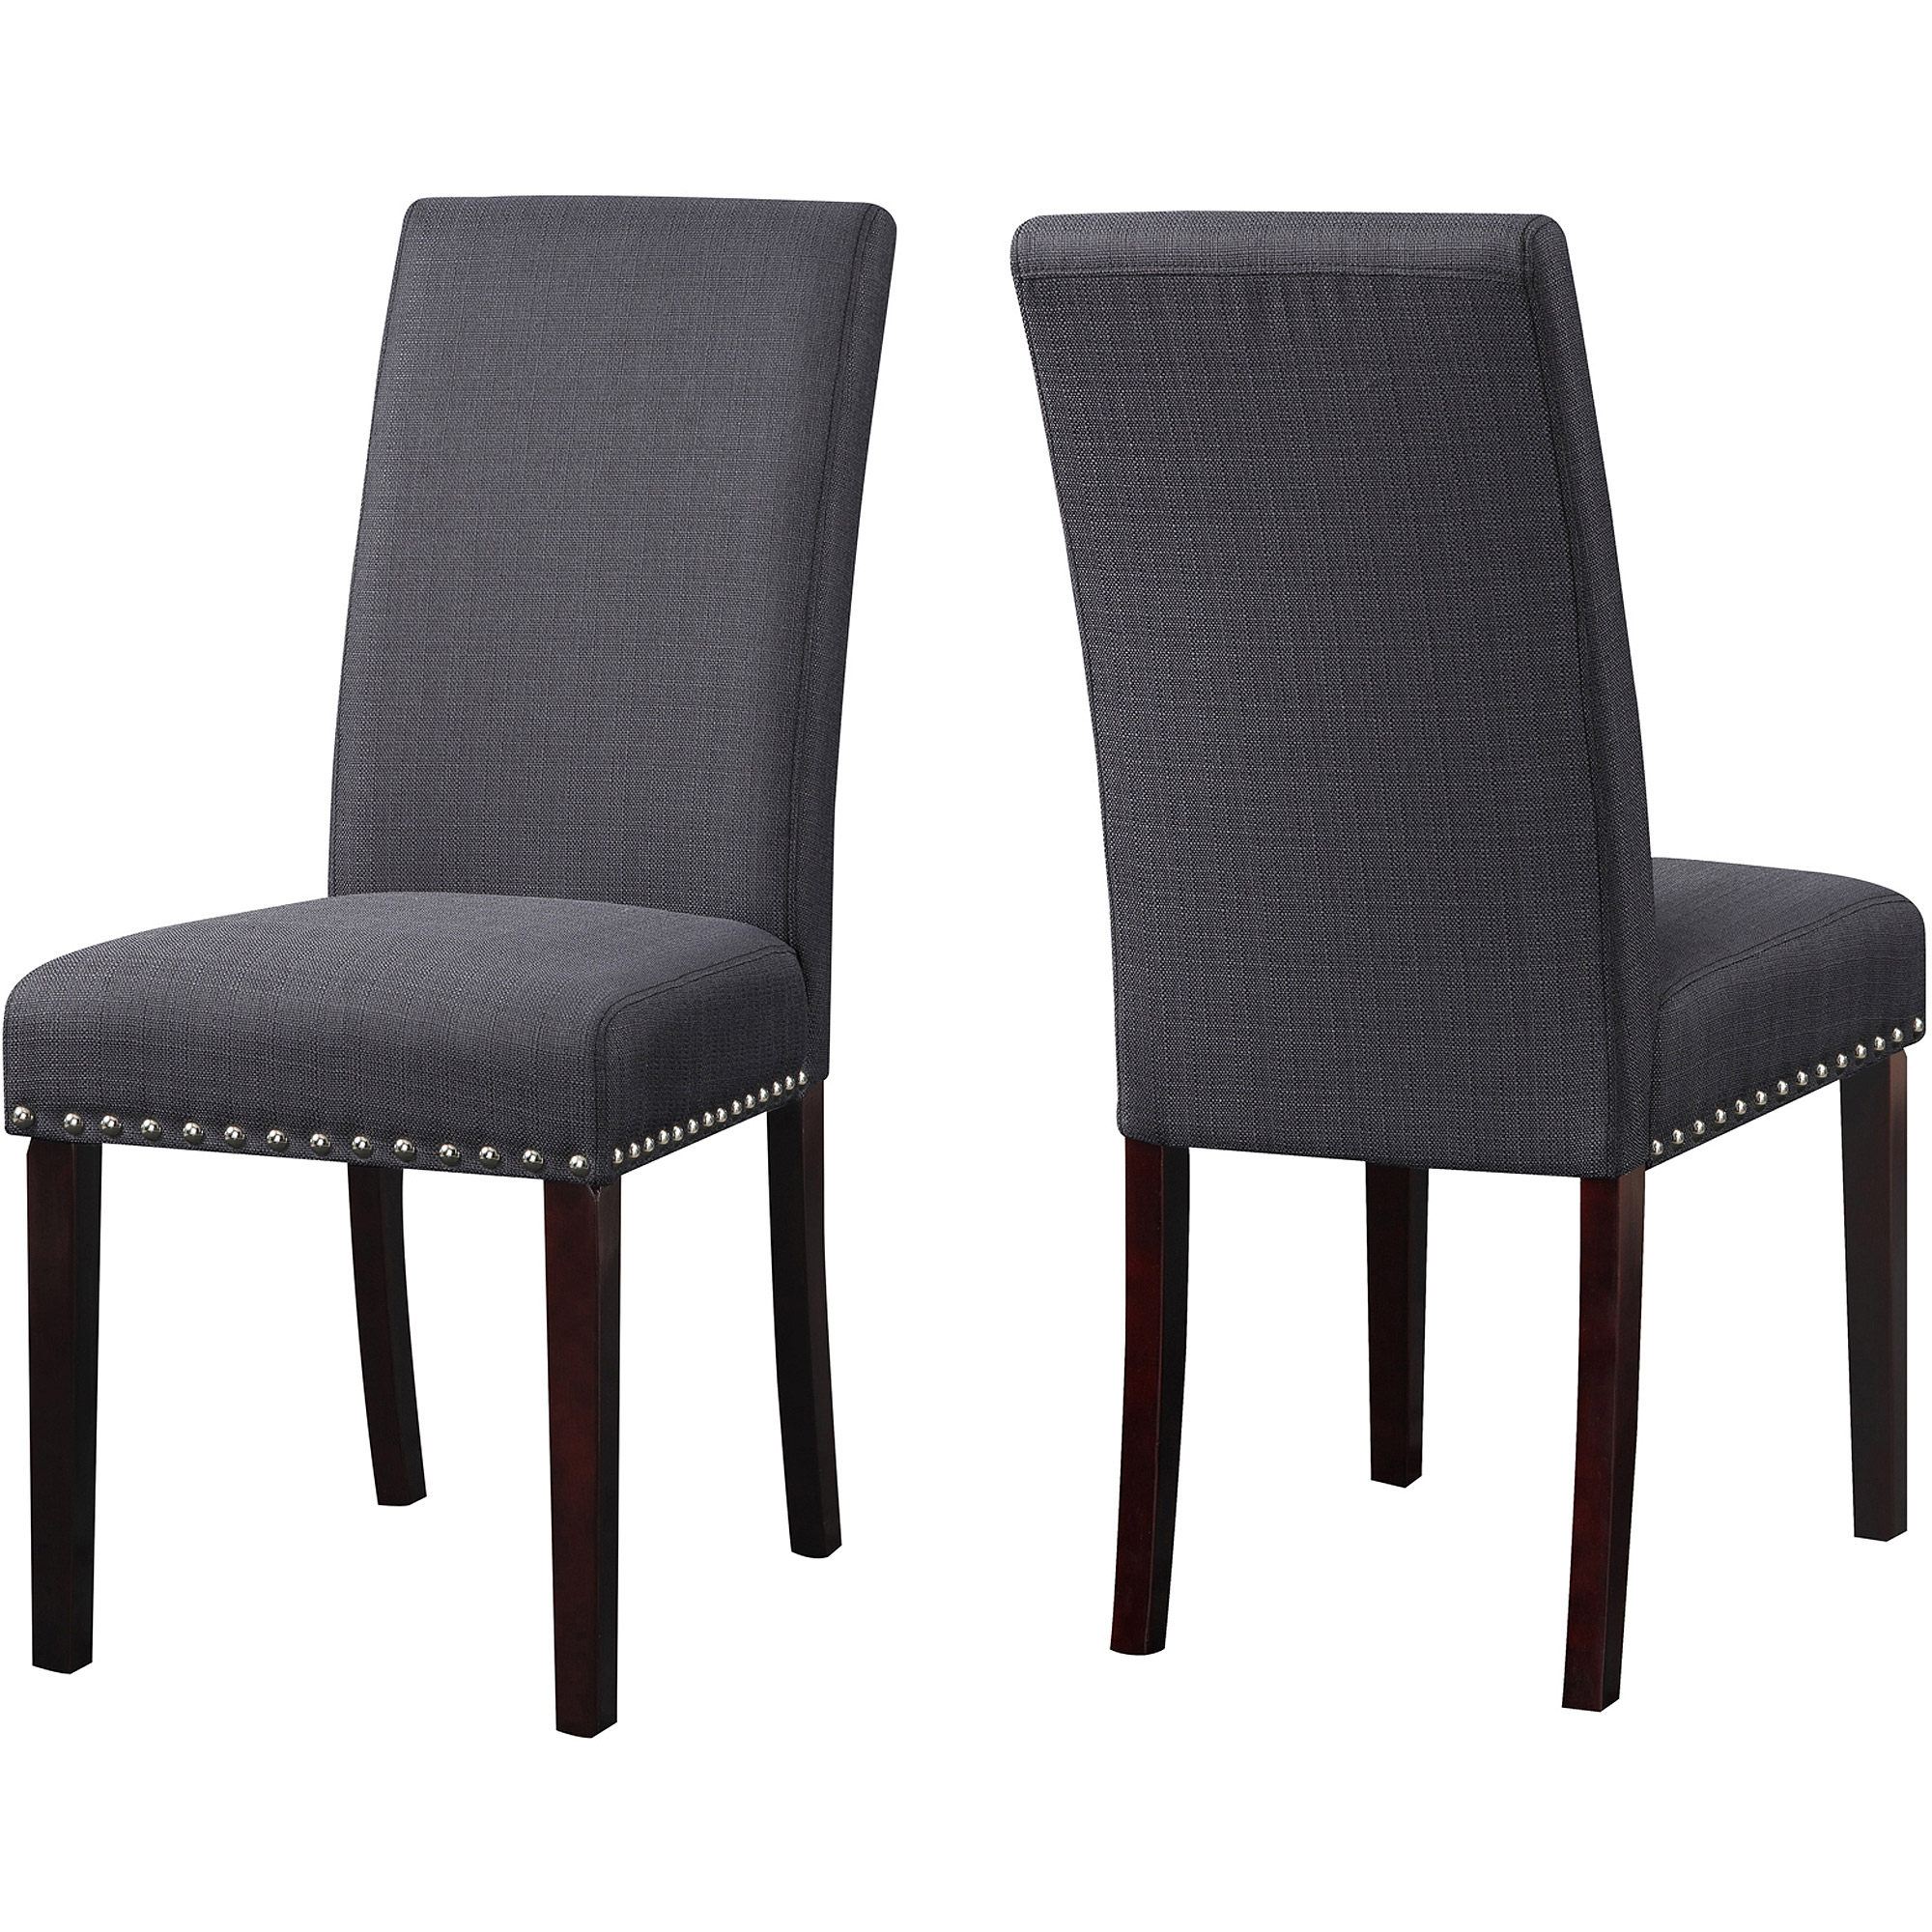 Better Homes and Gardens Autumn Lane Ladder Back Dining Chairs Set of 2 Black and Oak - Walmart.com  sc 1 st  Walmart & Better Homes and Gardens Autumn Lane Ladder Back Dining Chairs Set ...